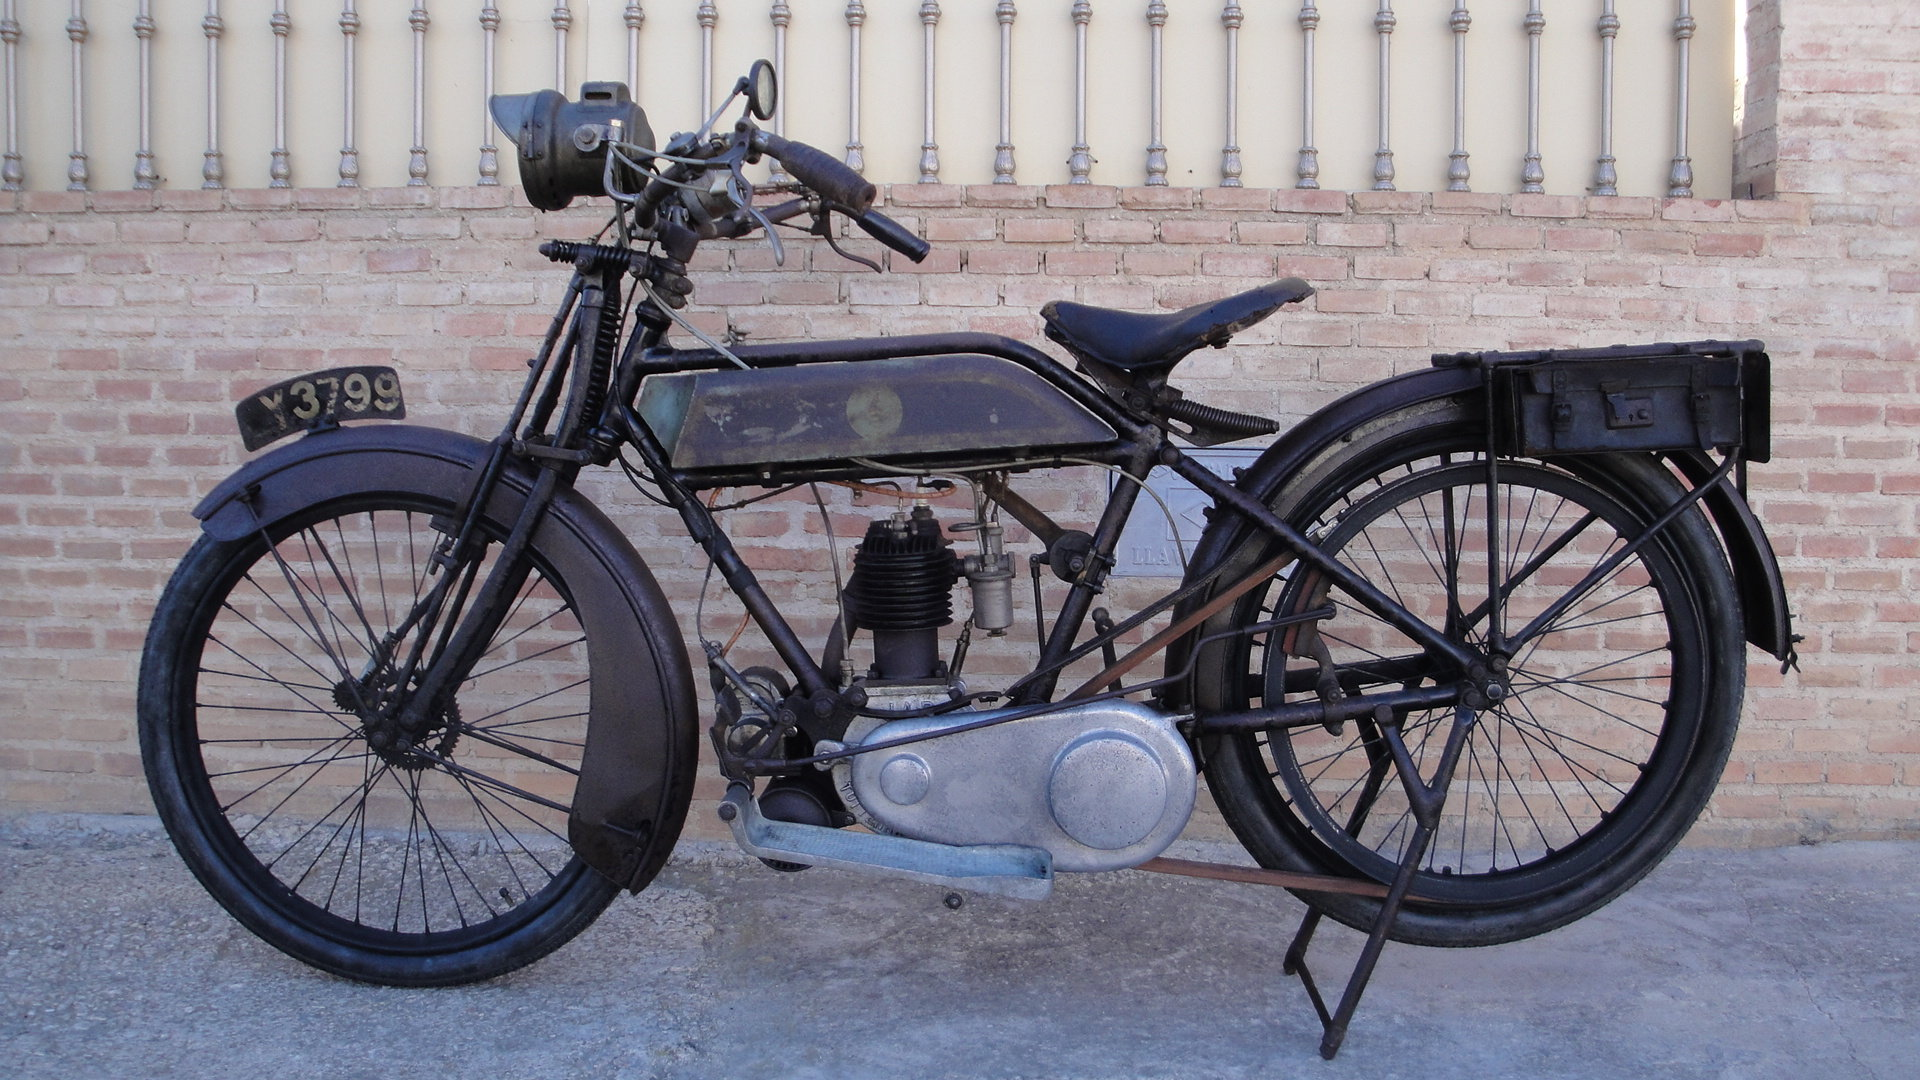 COVENTRY EAGLE 300cc JAP ENGINE YEAR 1916 For Sale | Car And Classic